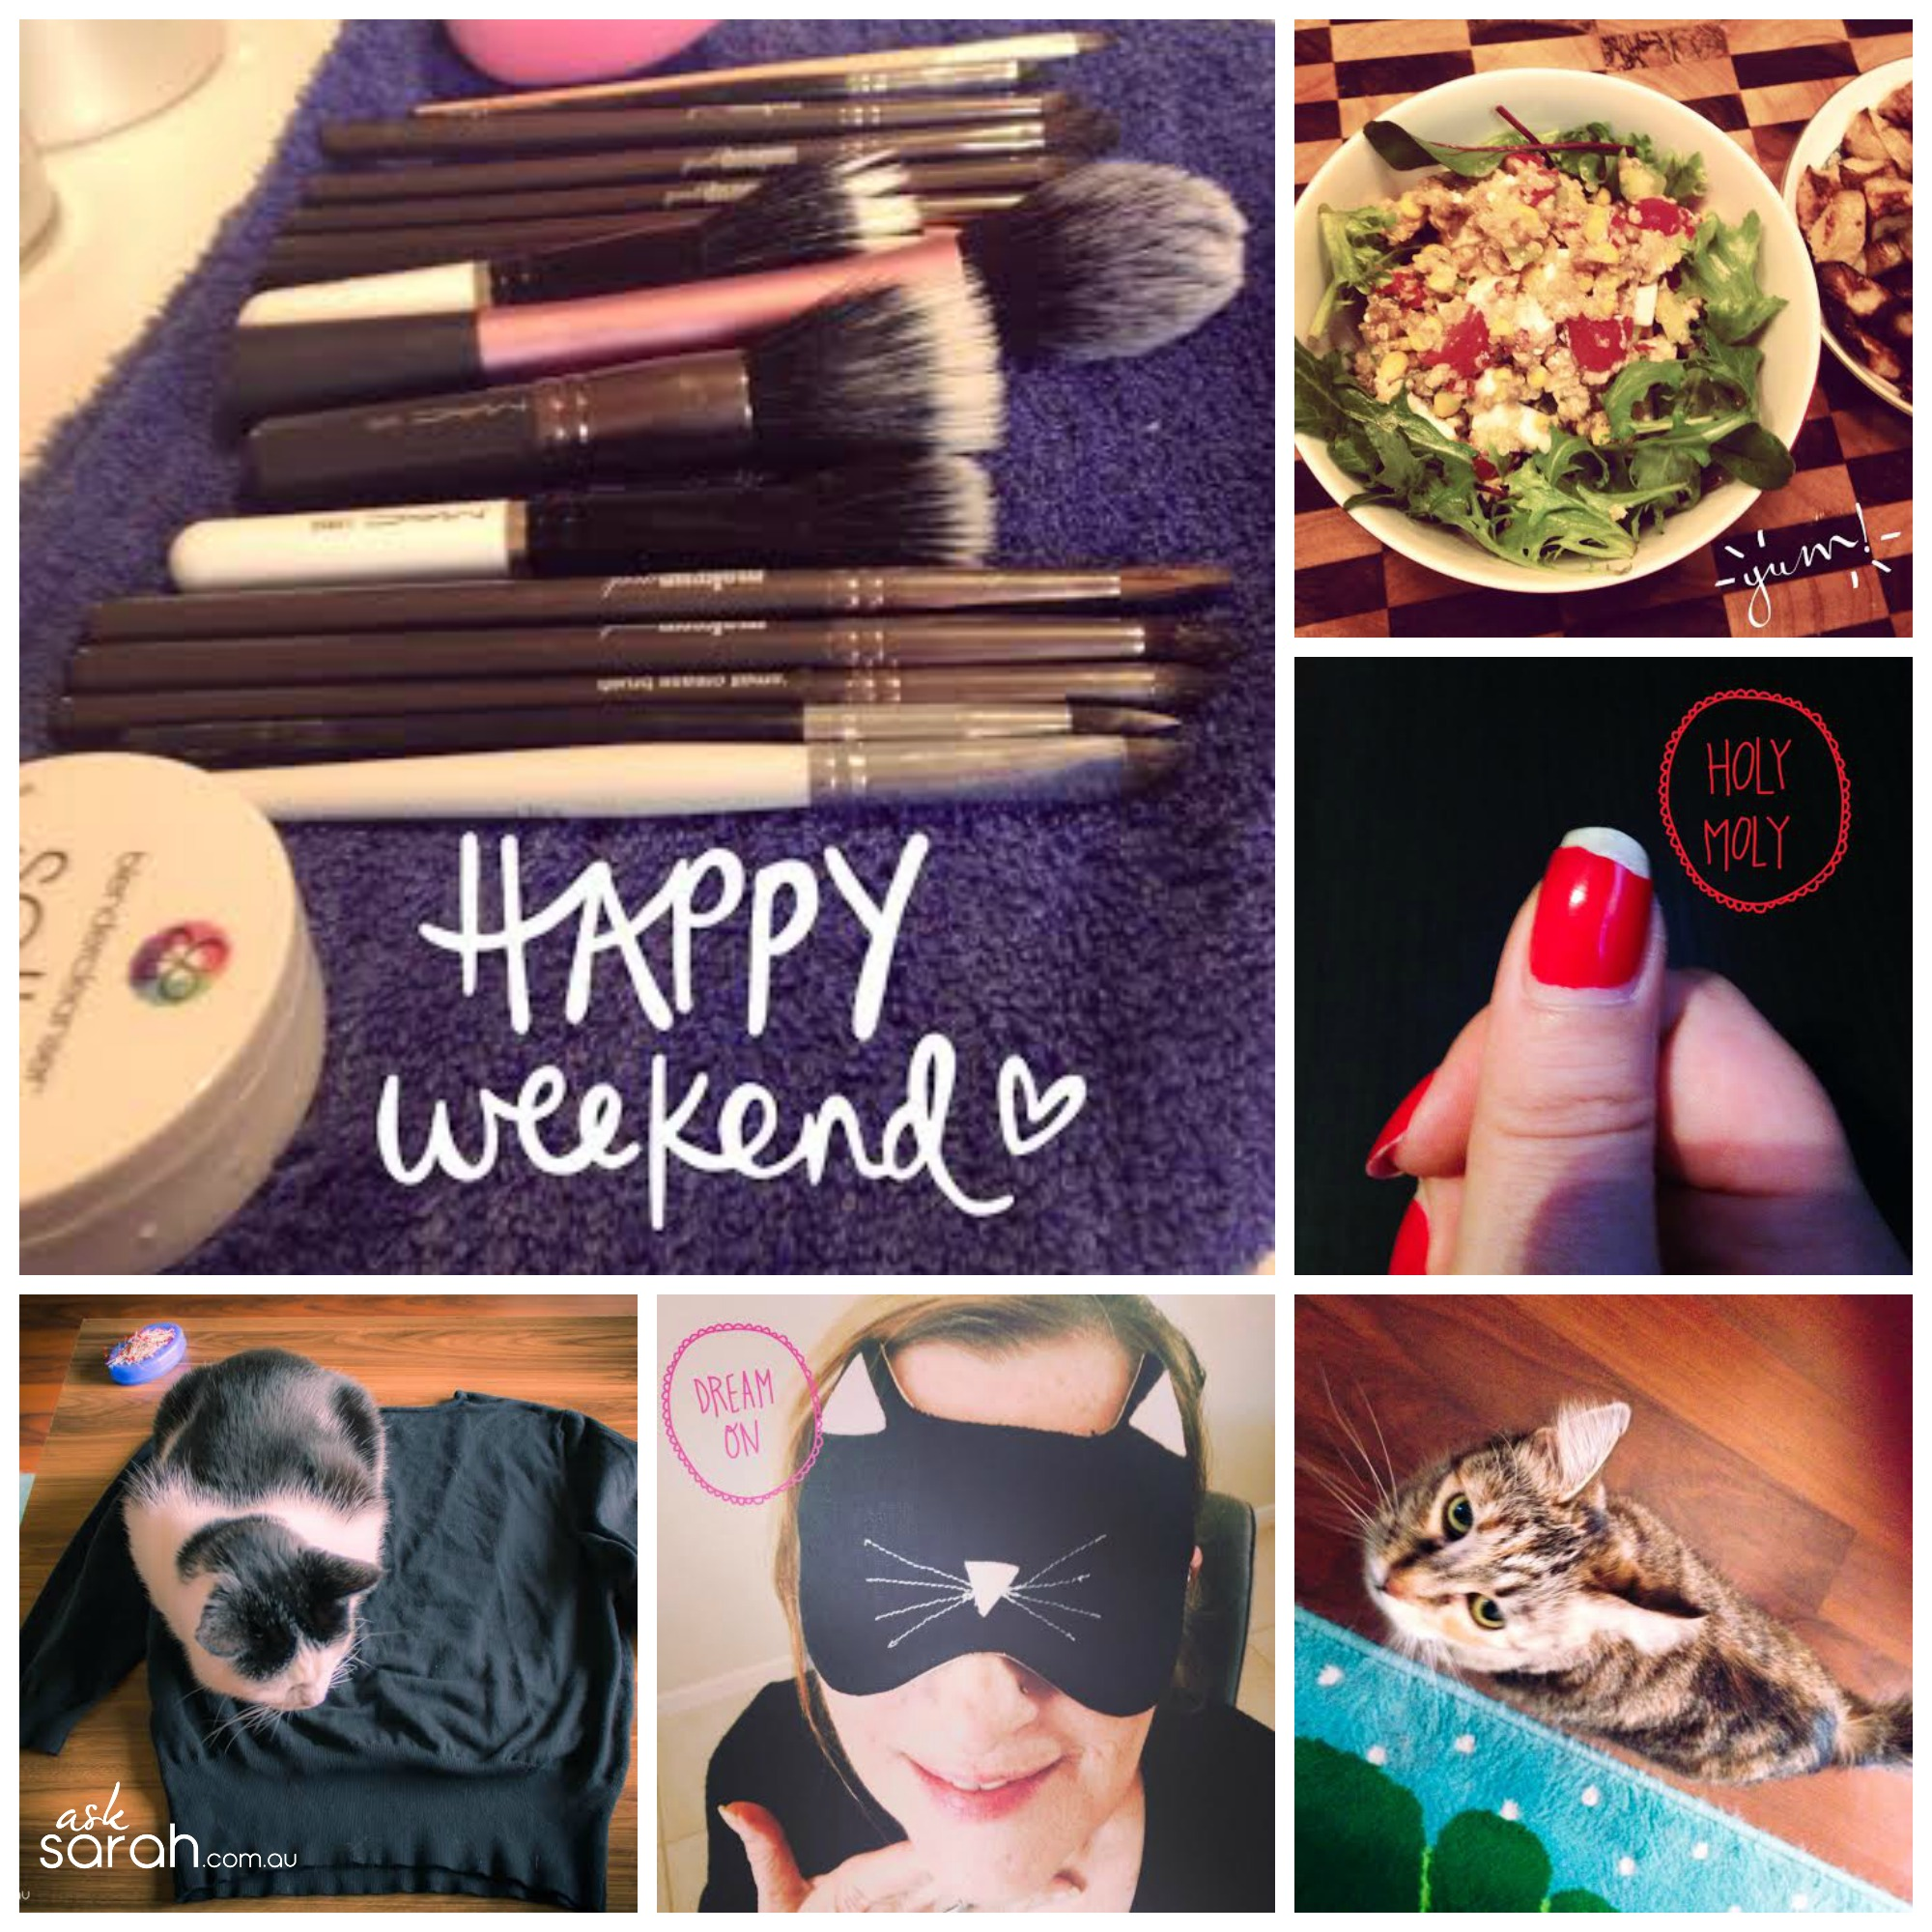 Second Look Sunday 27 July 2014